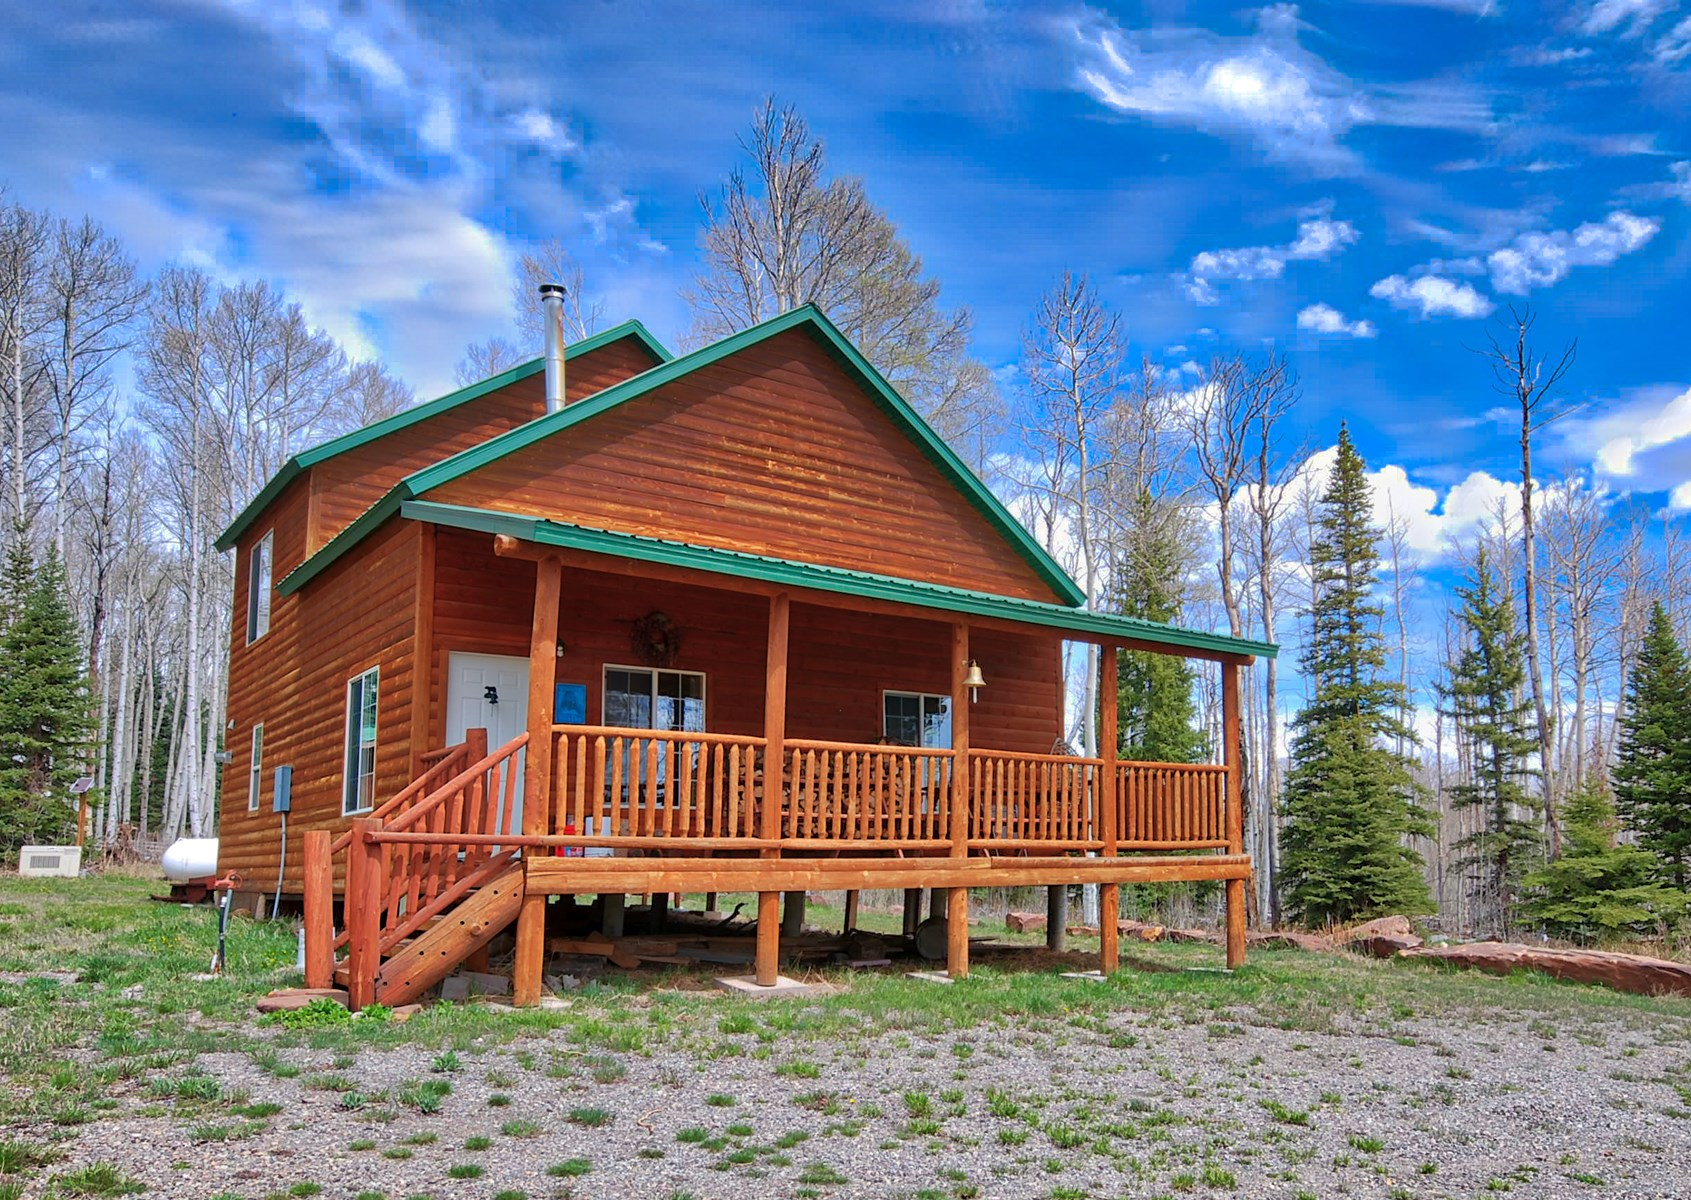 Mountain Property With Cabin For Sale in Western Colorado